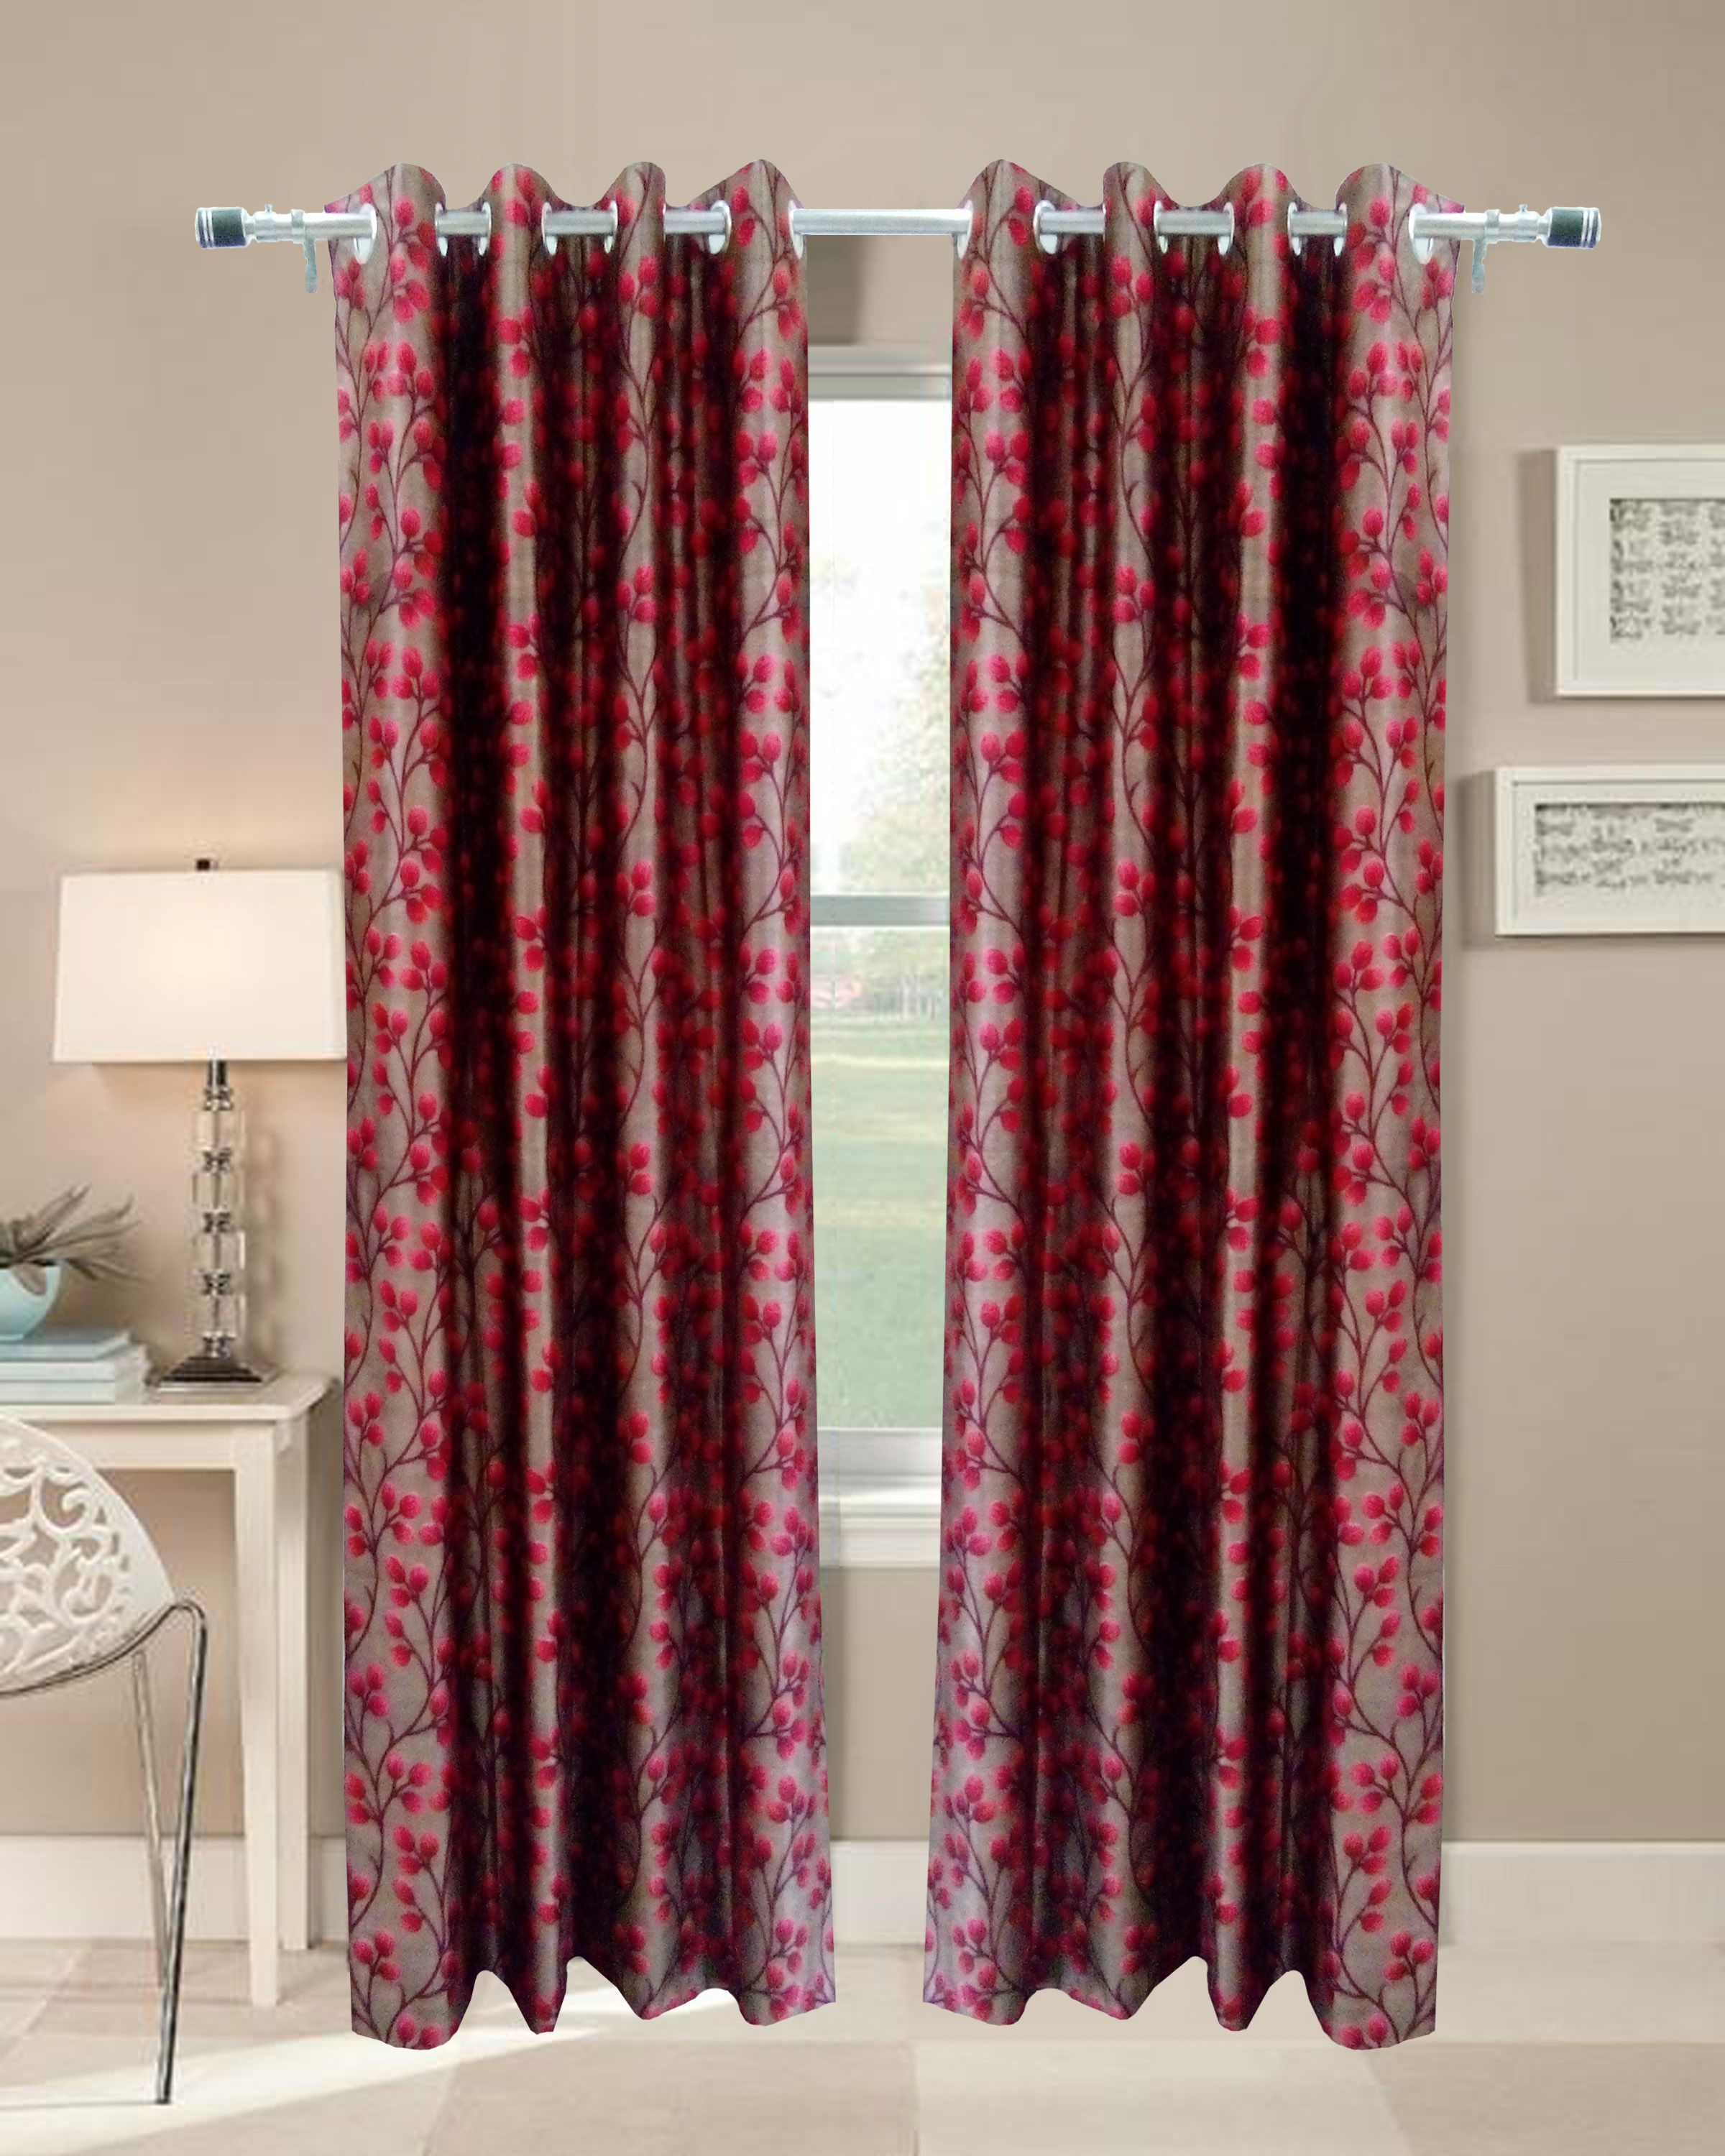 Homefab India Set of 2 Door Eyelet Curtains Floral Multi Color